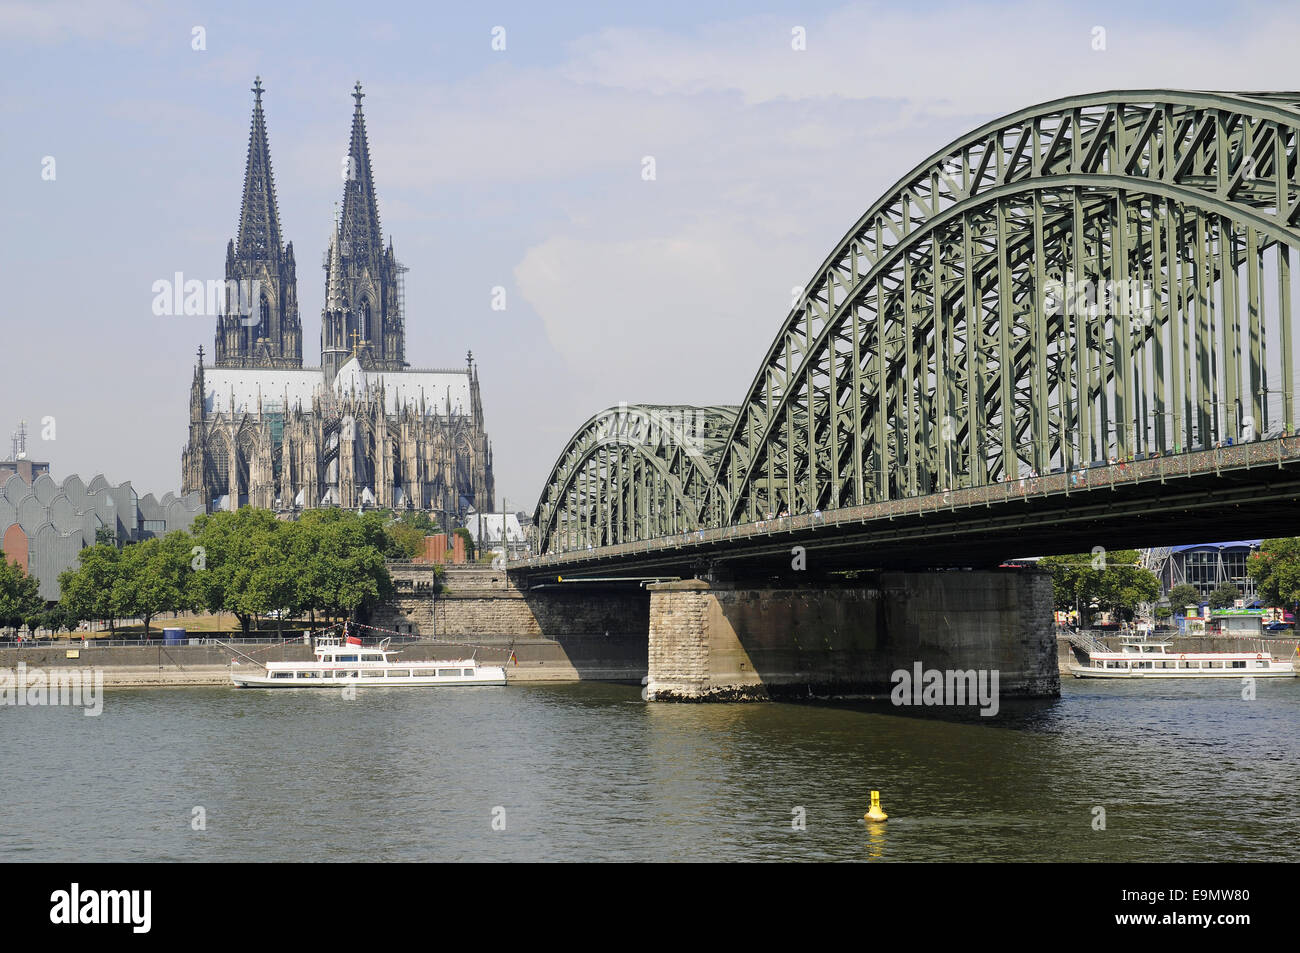 Cathedral, Rhine River, Cologne, Germany Stock Photo